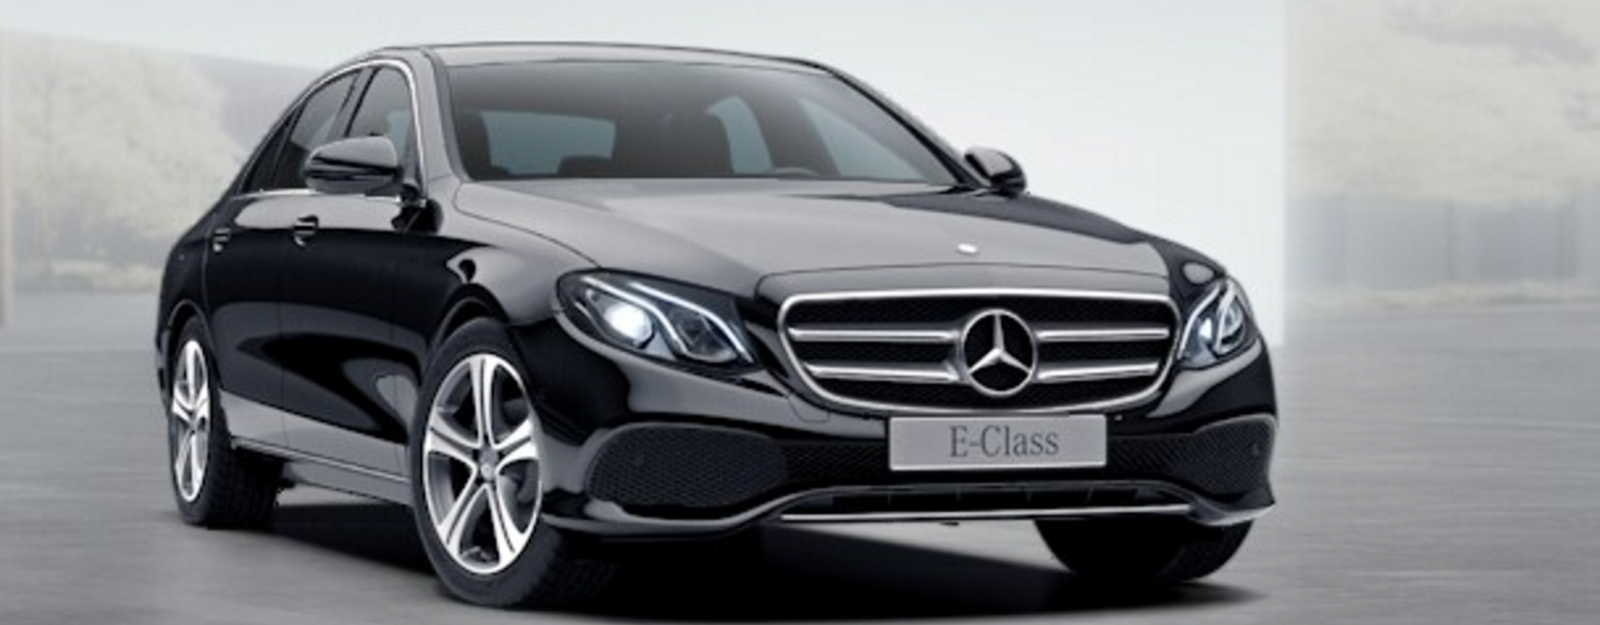 Mercedes e class colours guide and prices carwow for Mercedes benz e class 2017 black